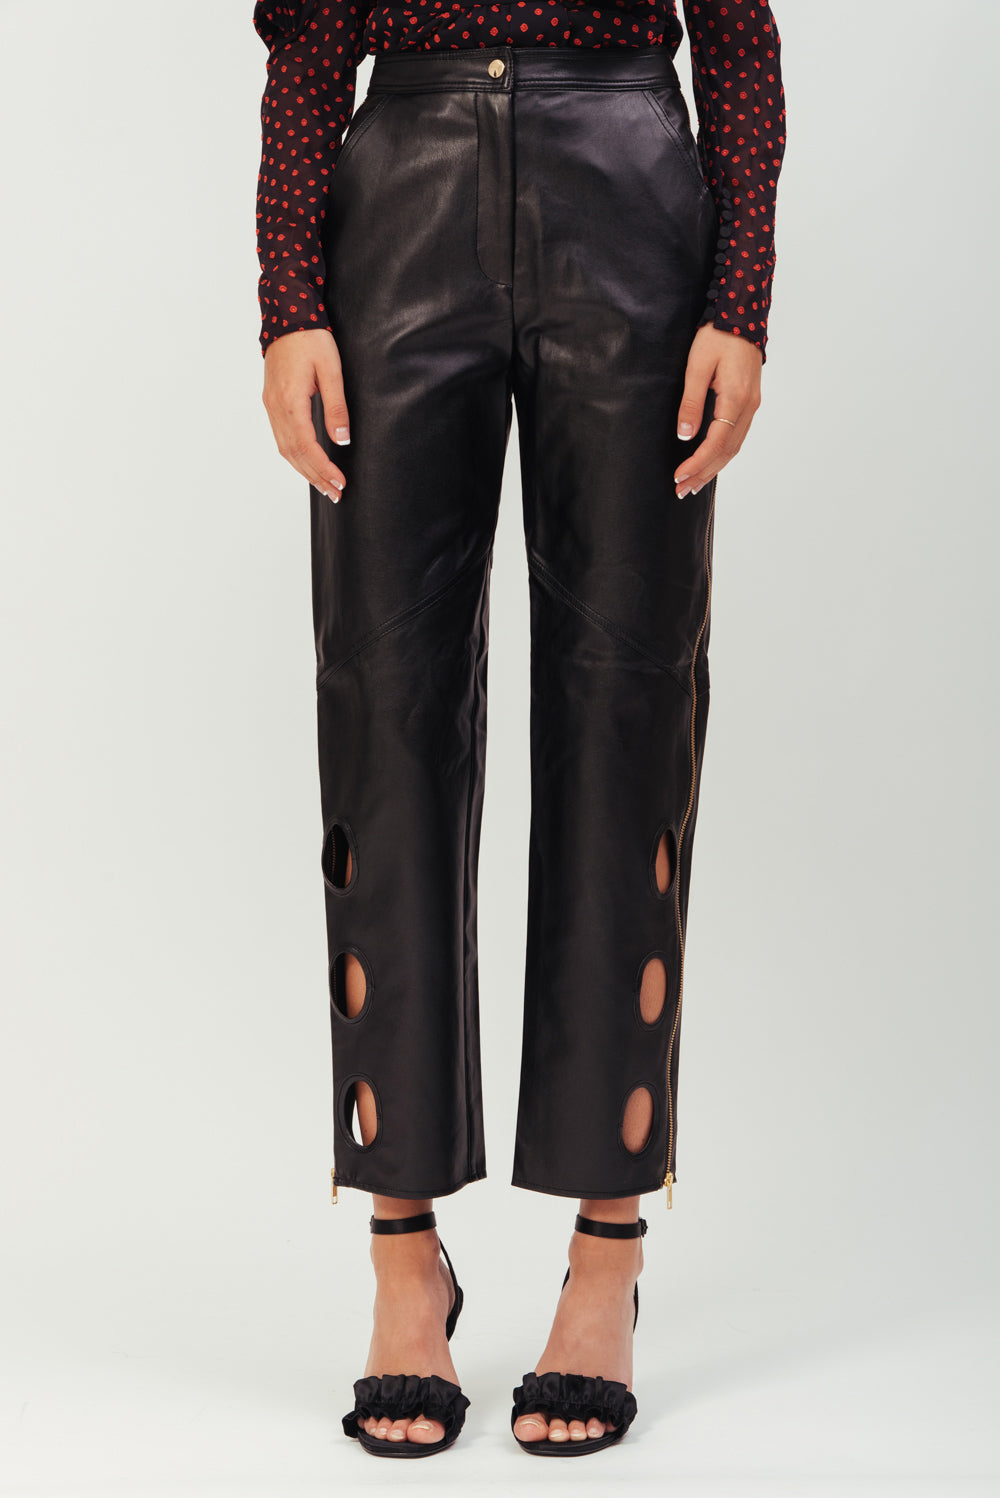 BLACK EYELET TROUSER FAUX LEATHER SP19-005F